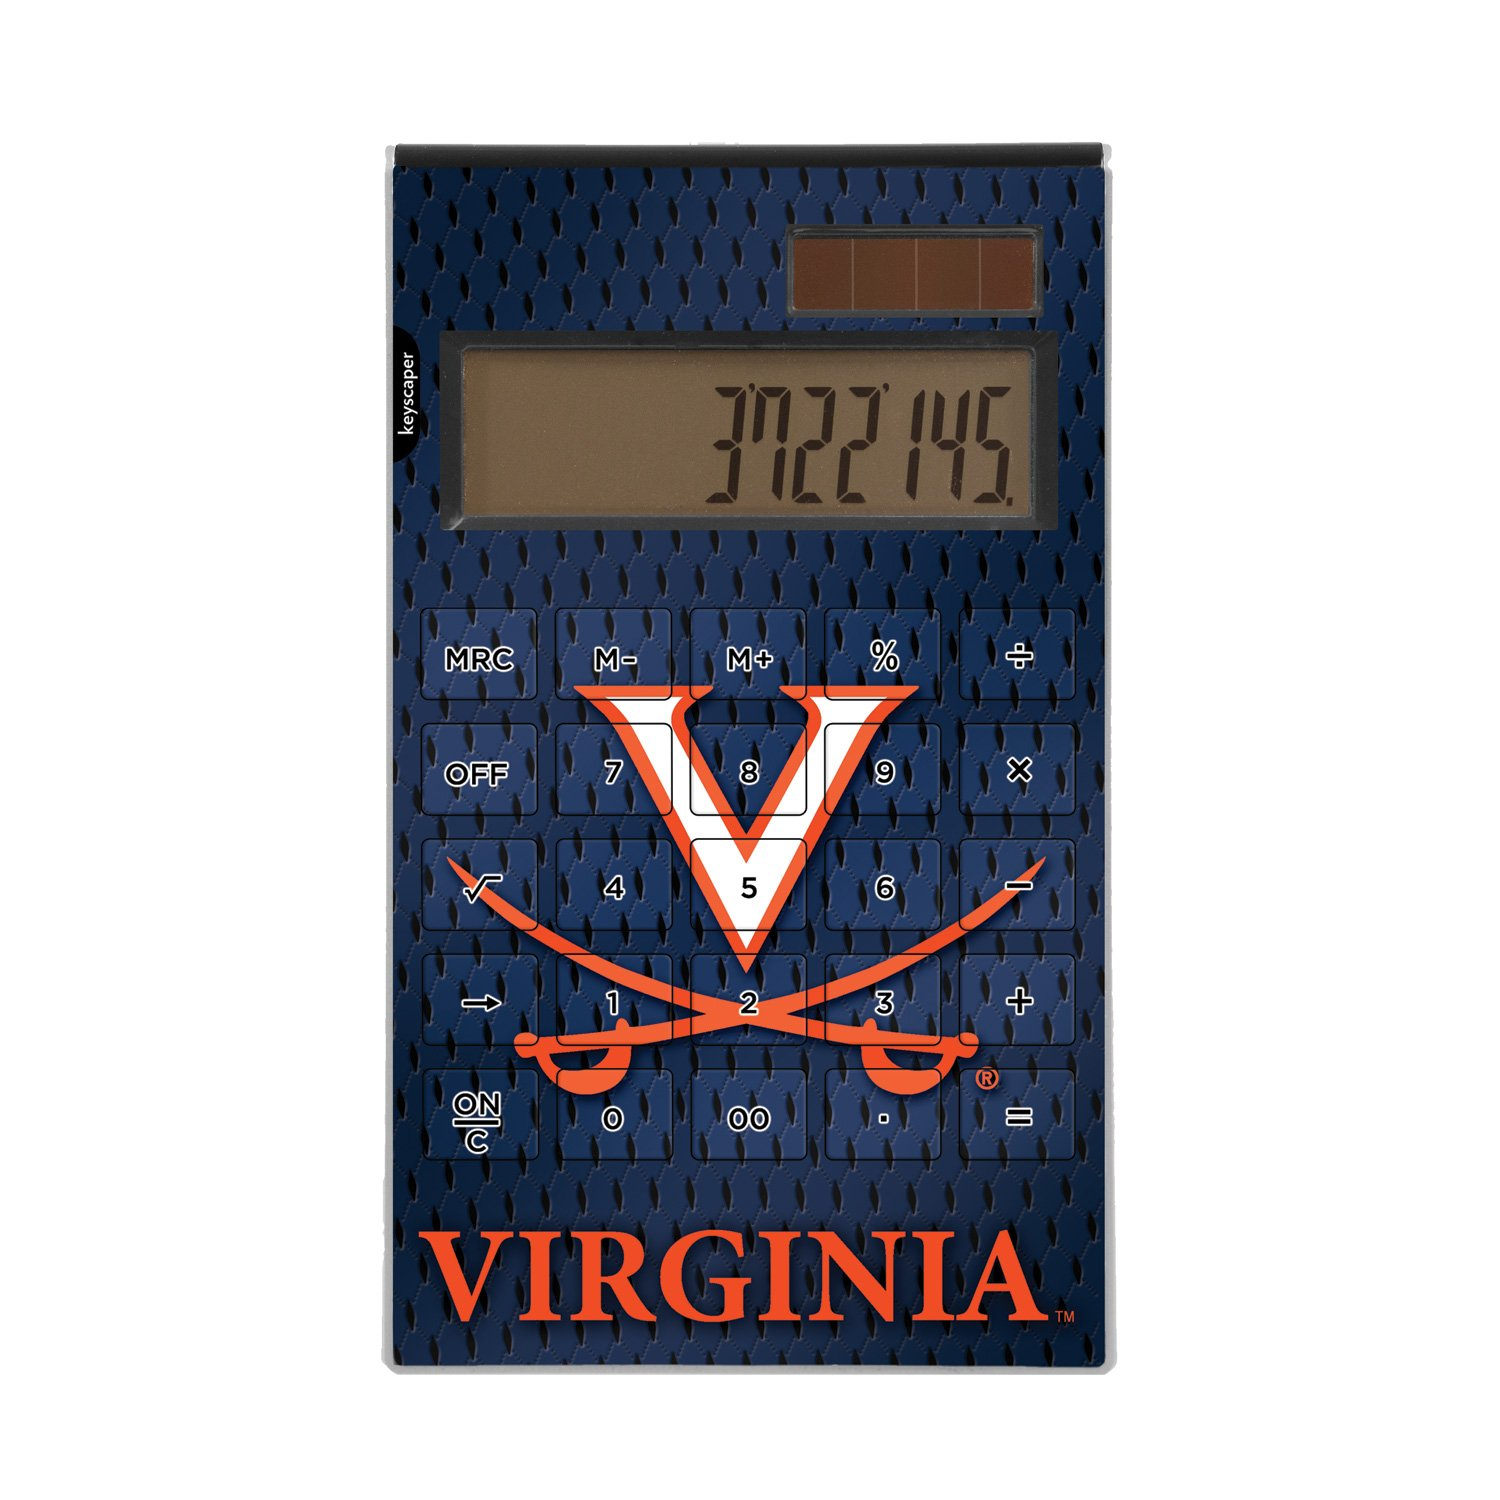 Virginia Cavaliers Desktop Calculator NCAA by Keyscaper